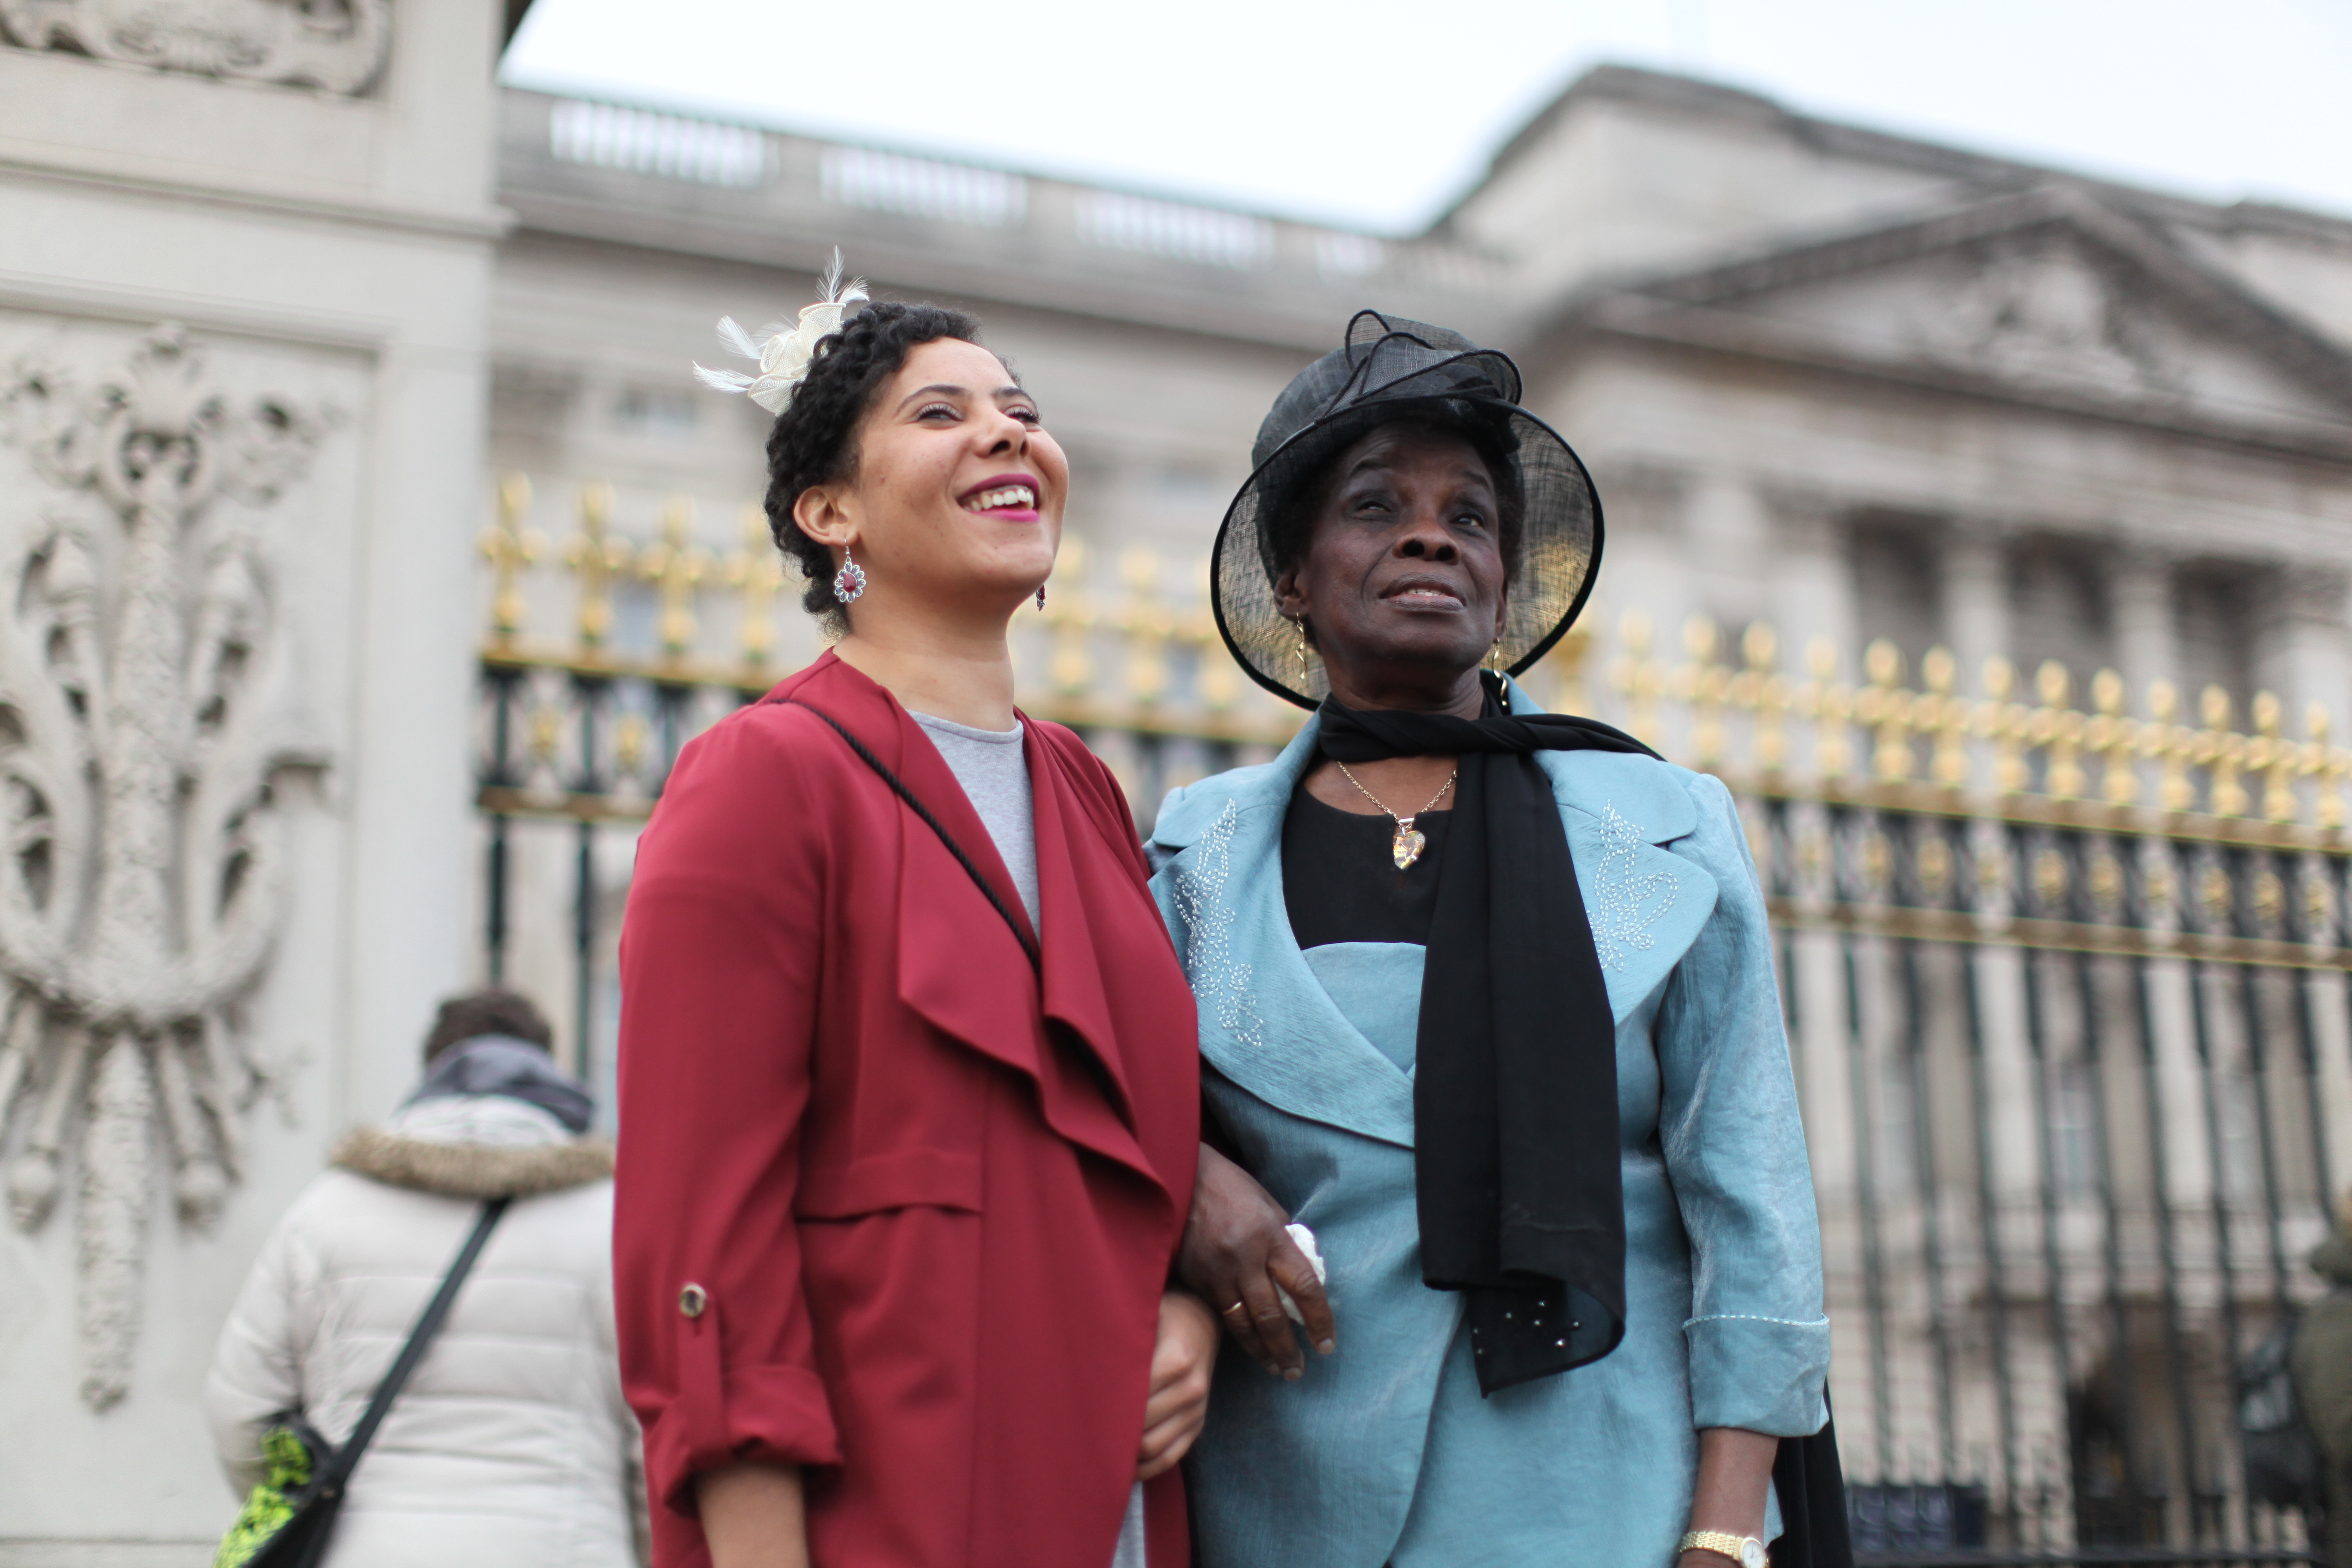 Sister Hannah and Grandmother Alift Harewood on her OBE, Buckingham Palace 2016